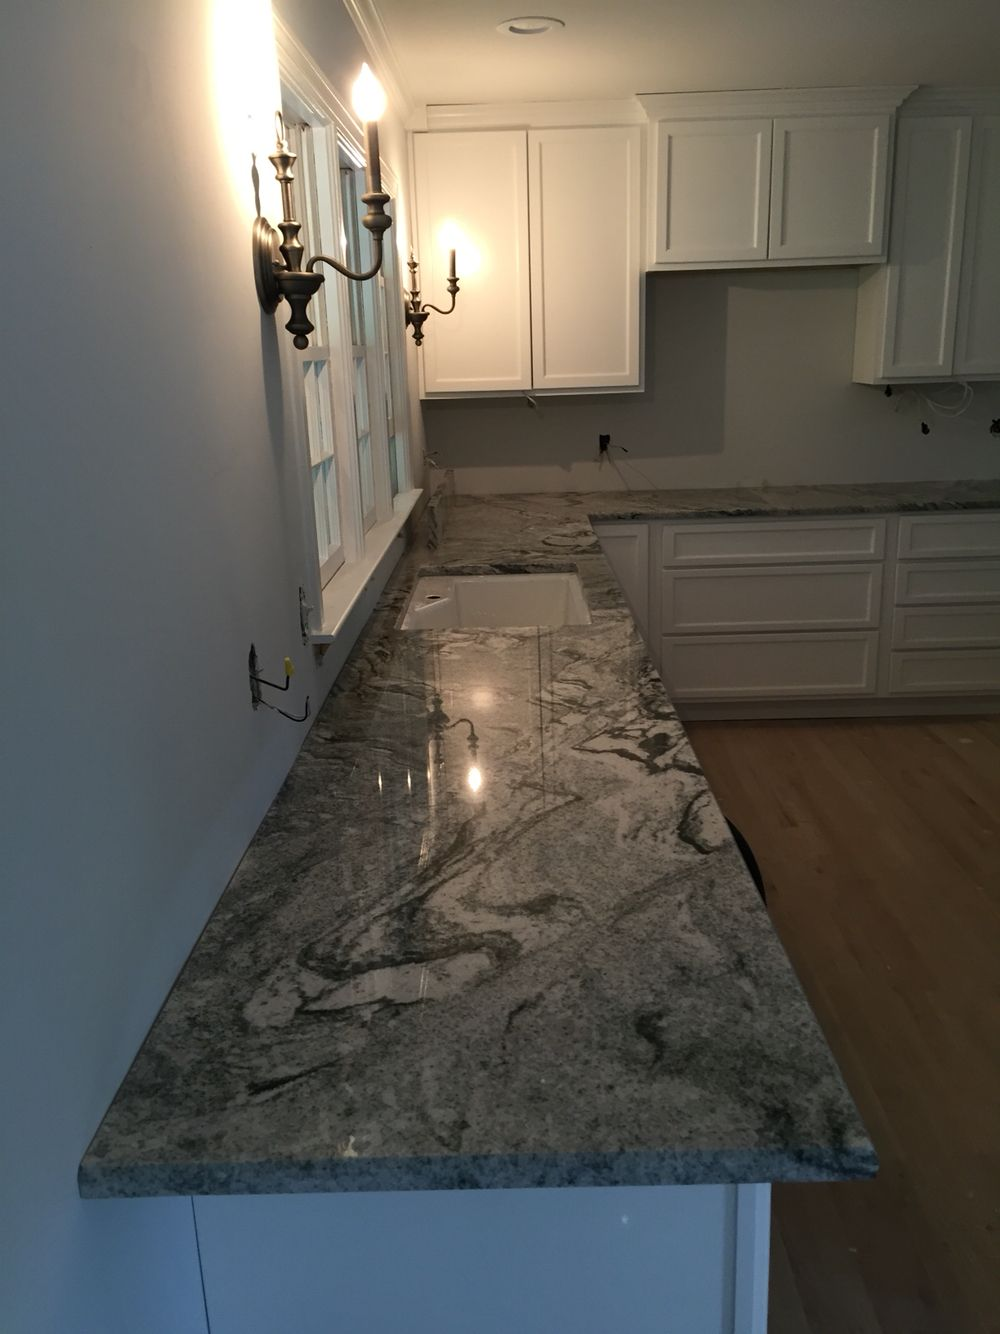 - Kitchen Remodel Viscon White Granite White Granite Countertops